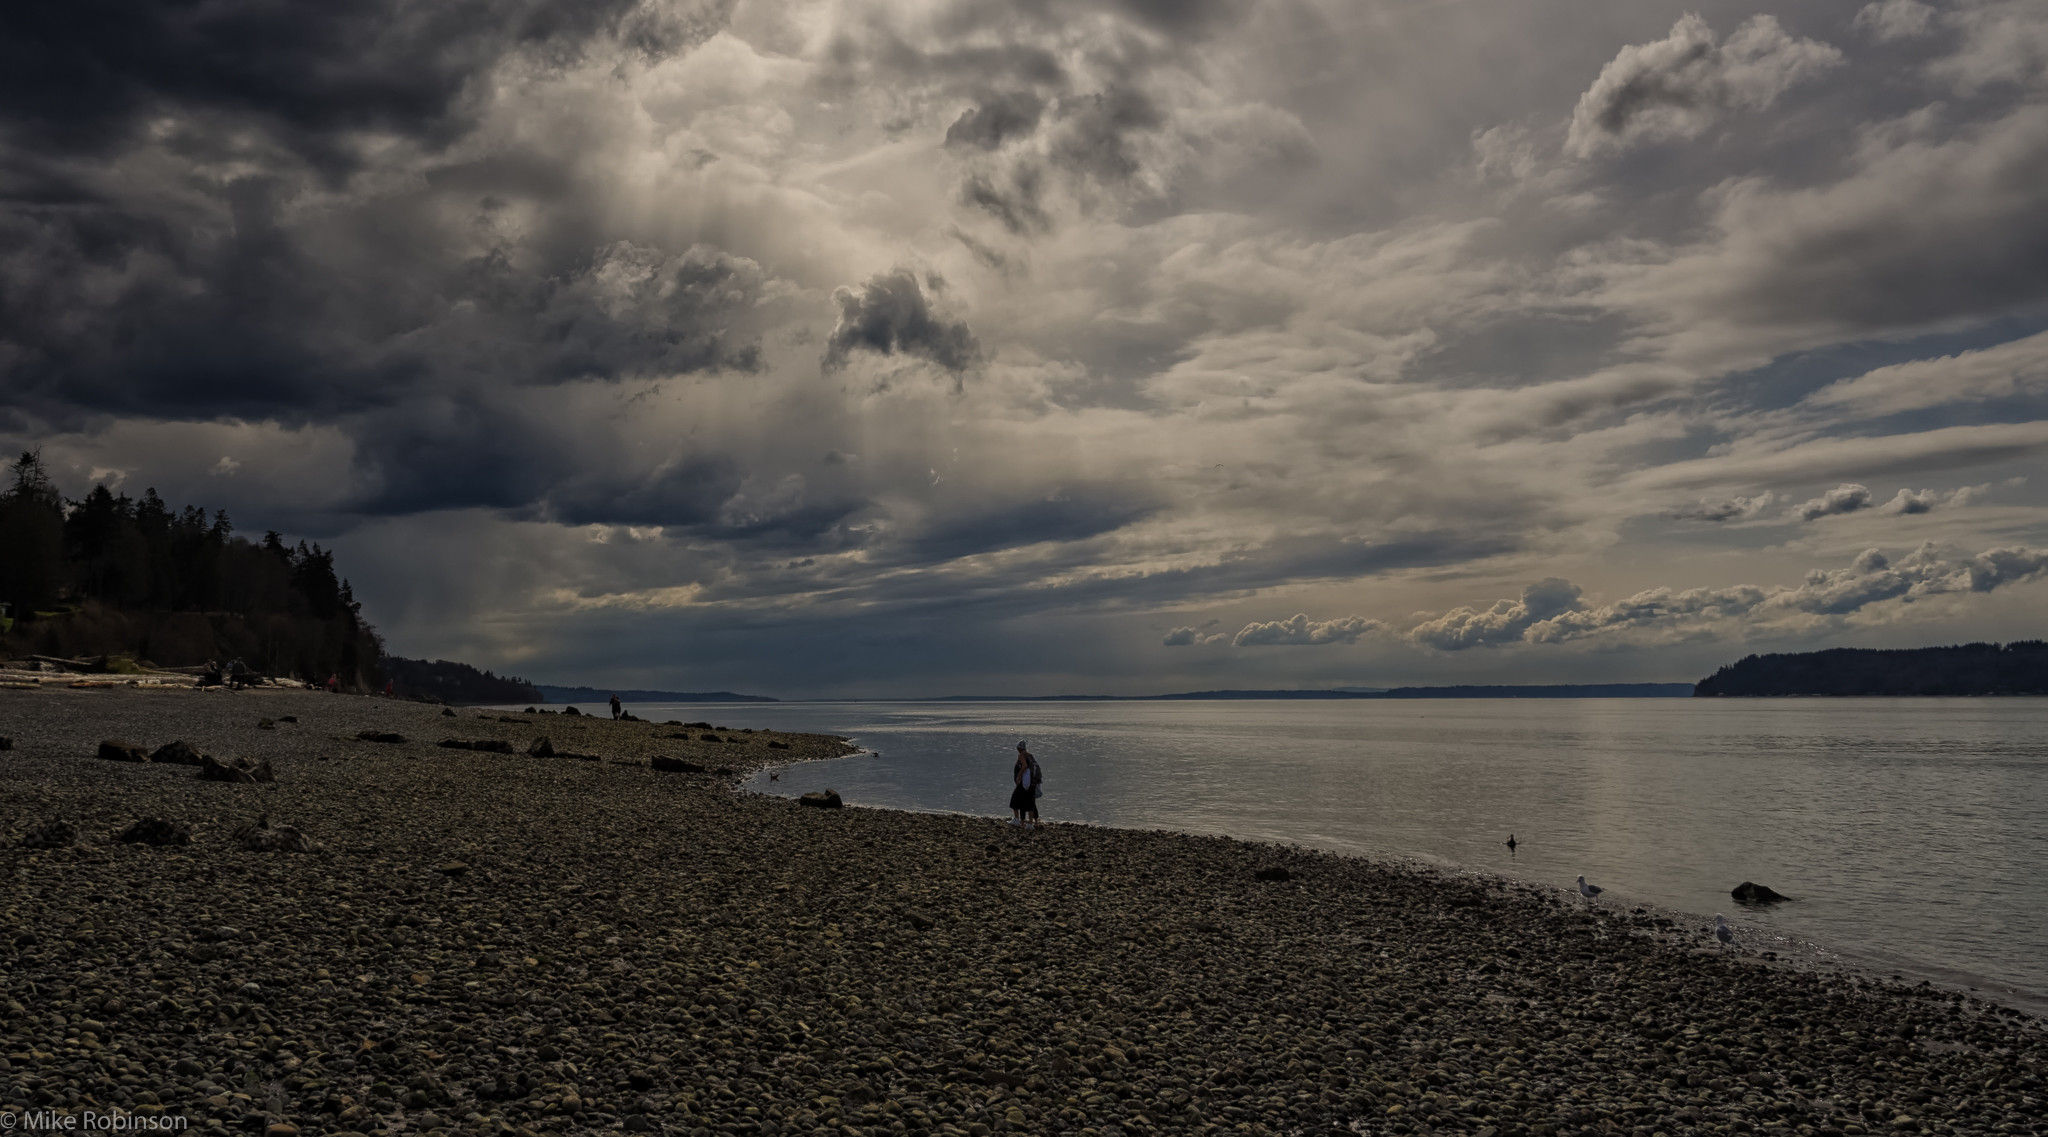 2048x1137 Puget_Sound_Rain_Color. I find myself missing the Pacific Northwest ...